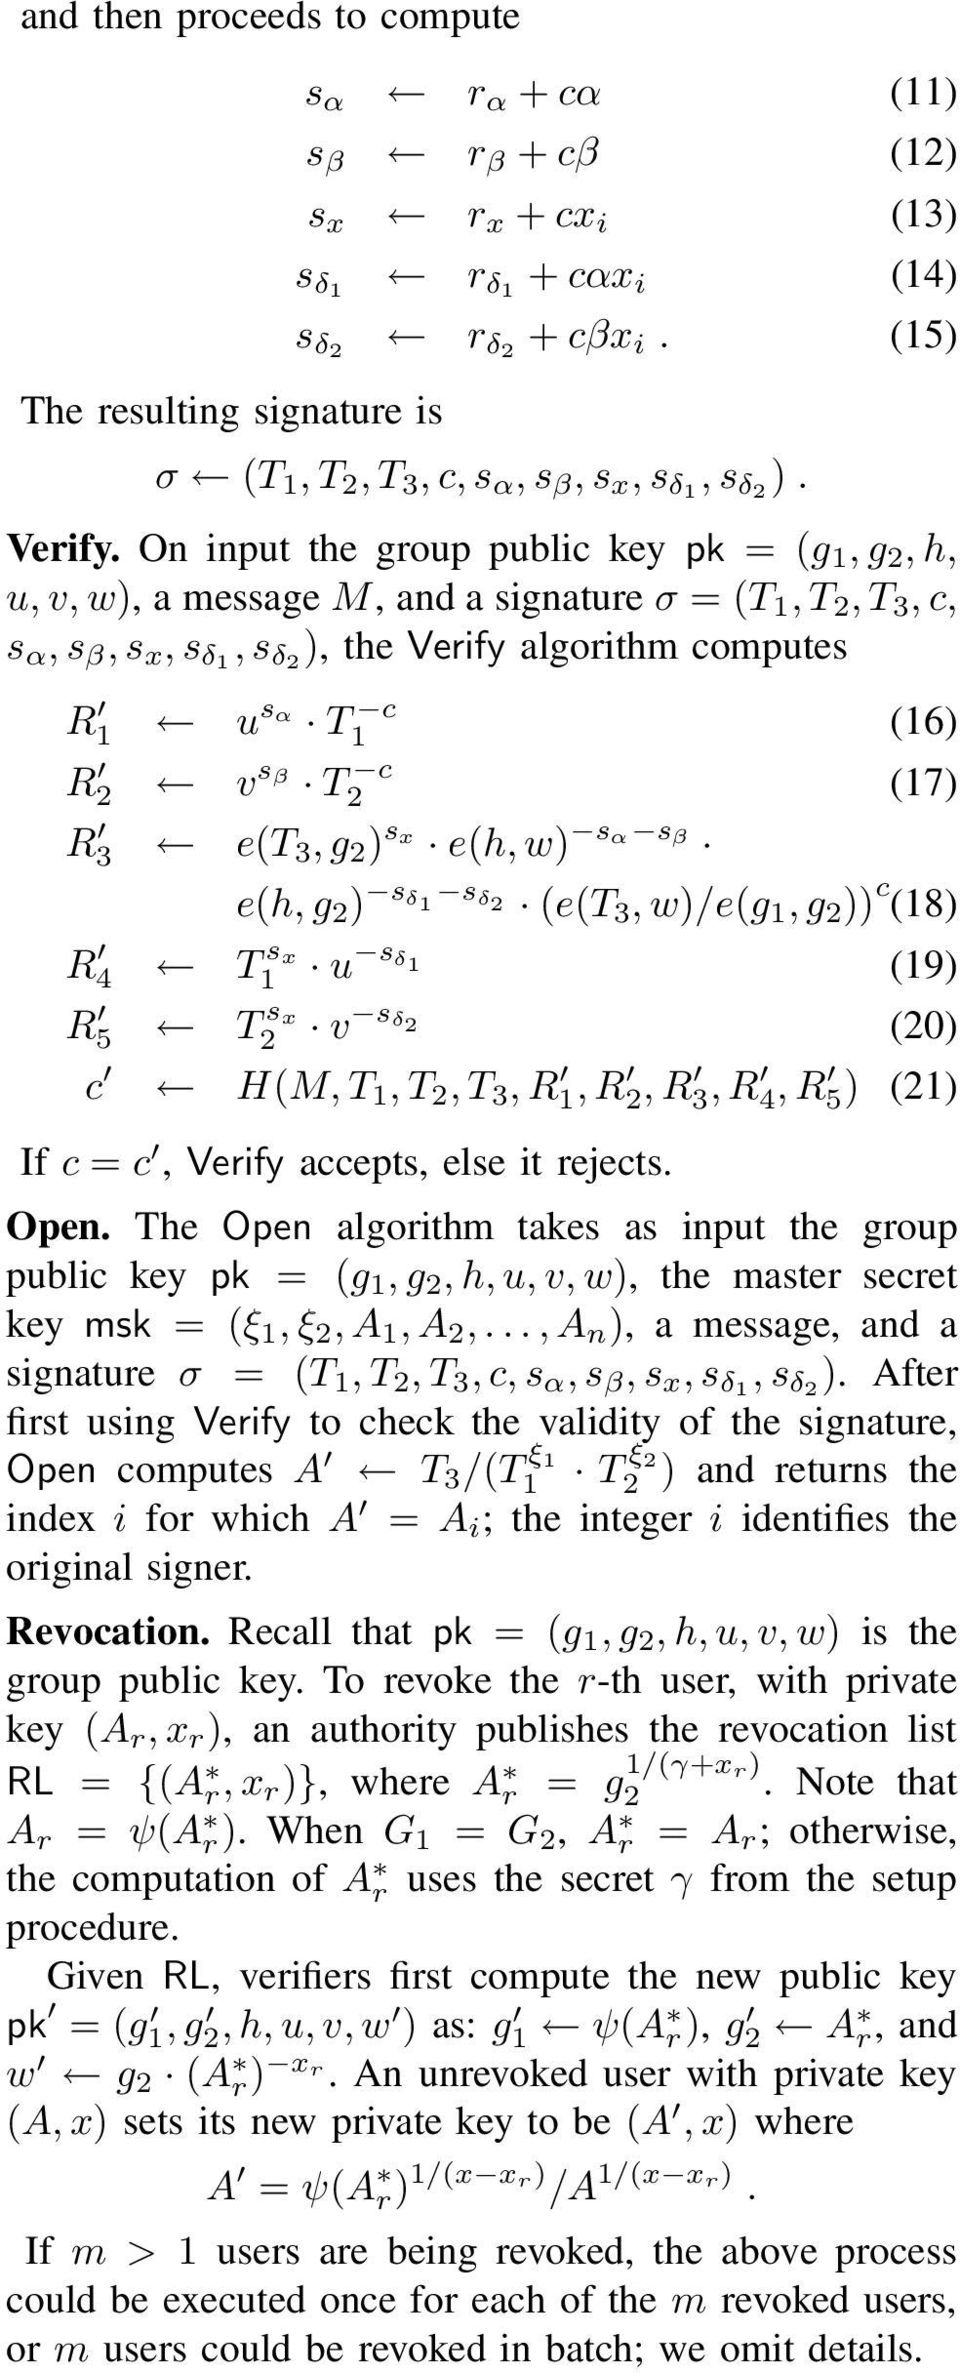 On input the group public key pk = (g 1, g 2, h, u, v, w), a message M, and a signature σ = (T 1, T 2, T 3, c, s α, s β, s x, s δ1, s δ2 ), the Verify algorithm computes R 1 u sα T1 c (16) R 2 v sβ